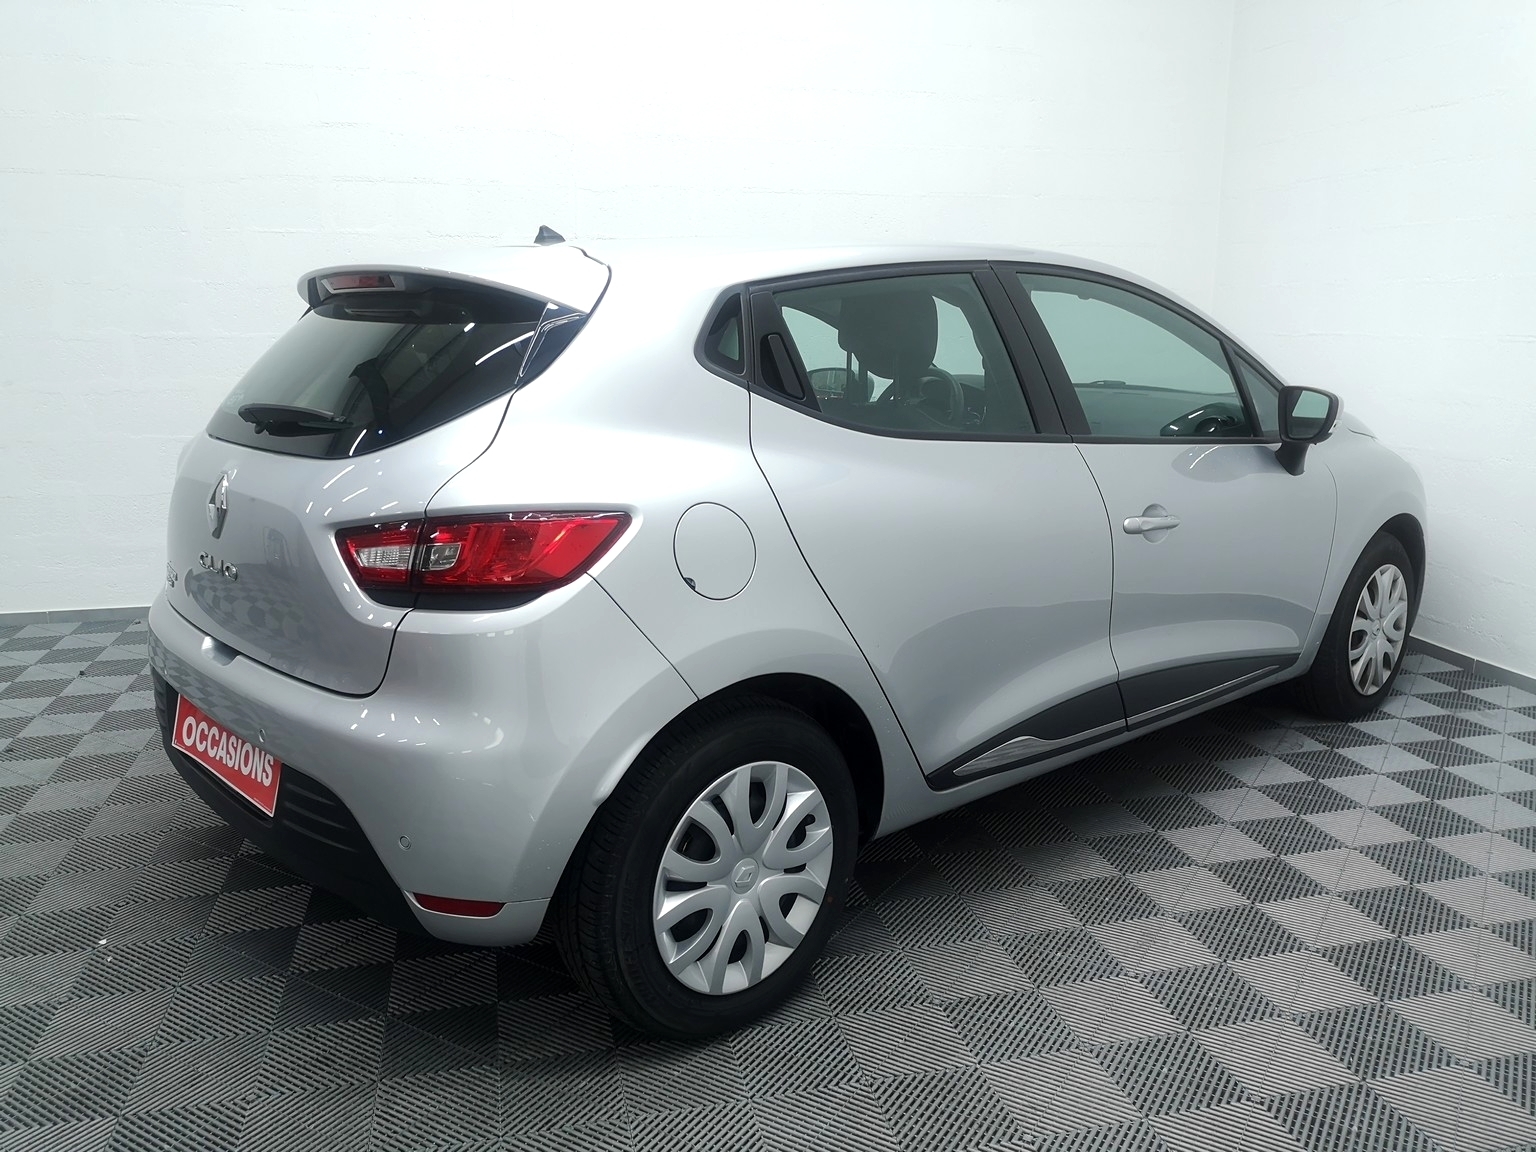 RENAULT CLIO IV 2018 à 9500 € - Photo n°4